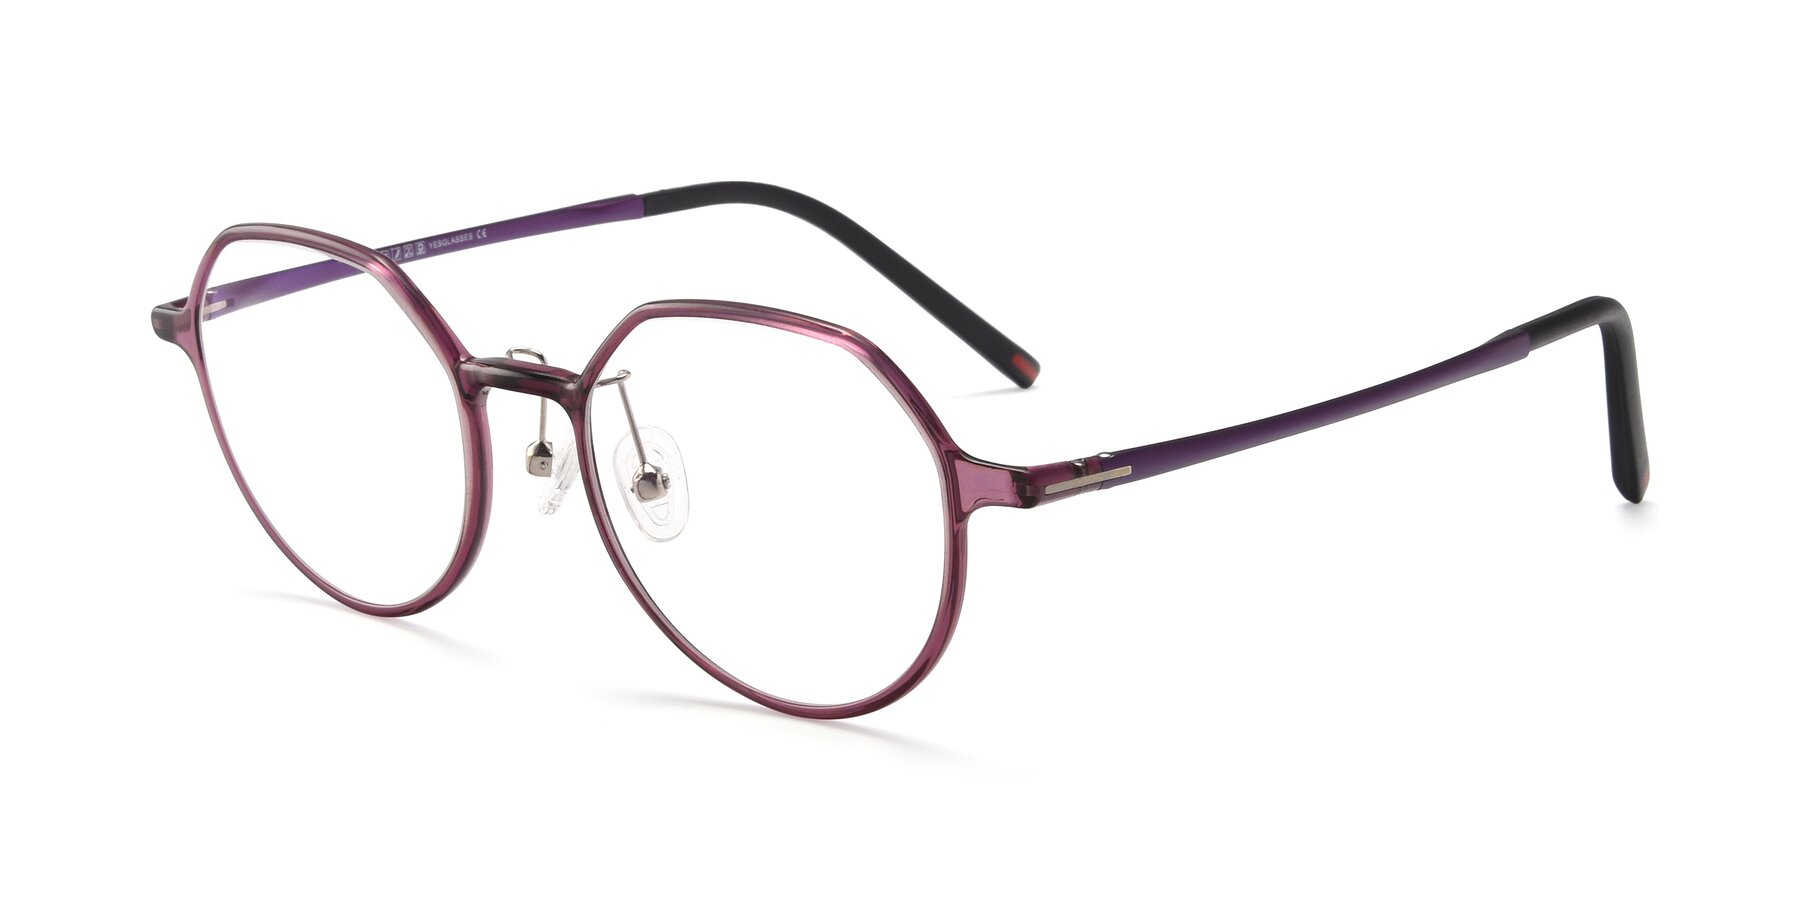 Angle of IP7033 in Purple with Clear Blue Light Blocking Lenses